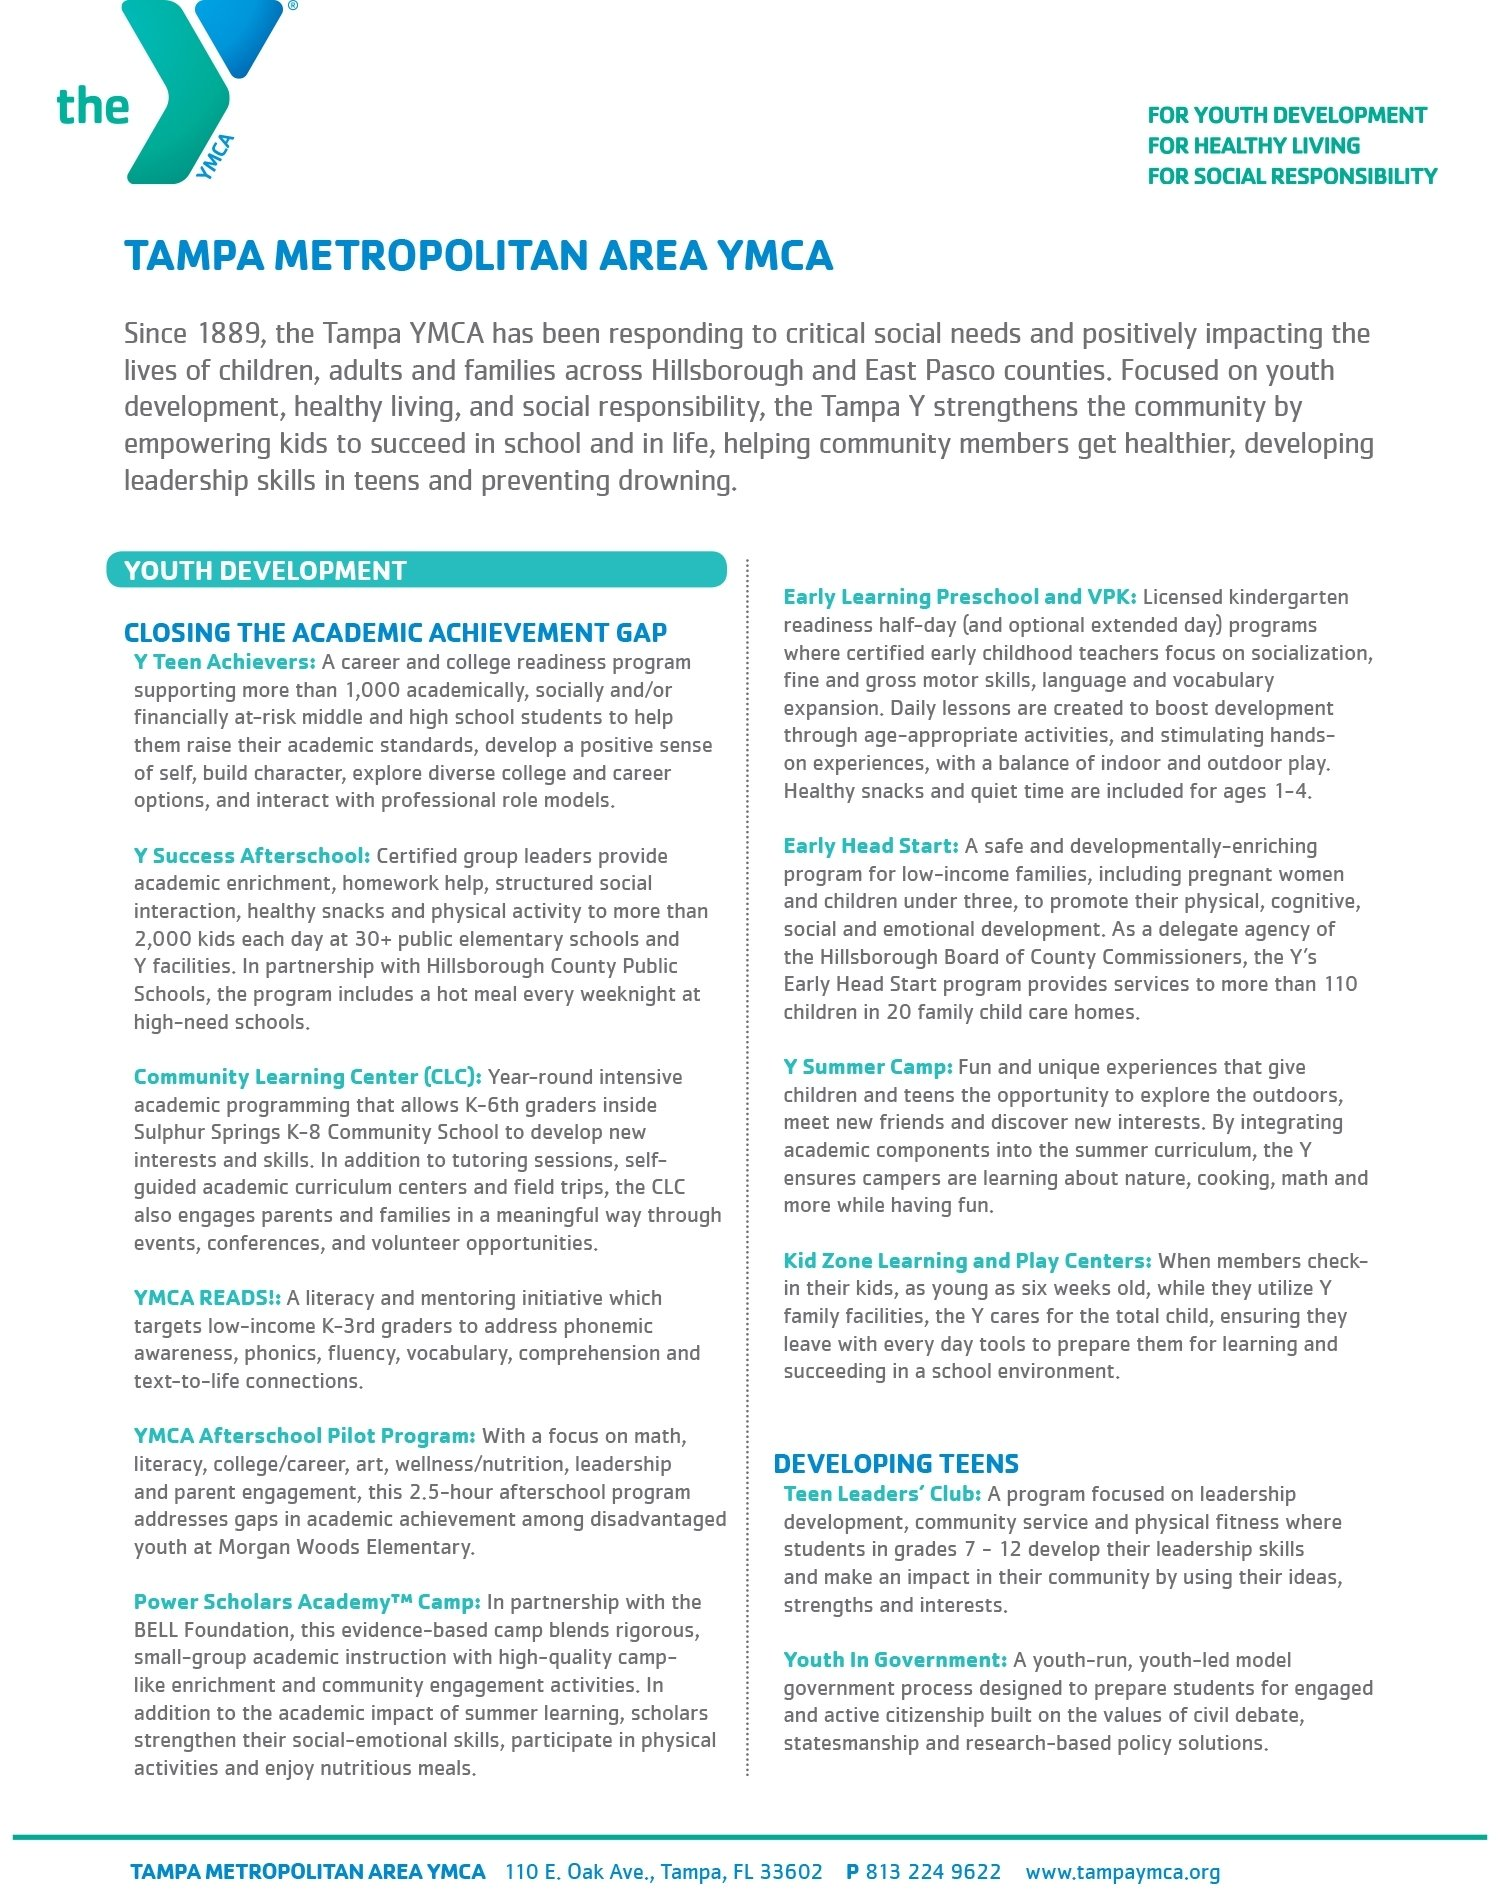 10 Best Community Service Ideas For High School Students serving the community tampa metropolitan area ymca 1 2020